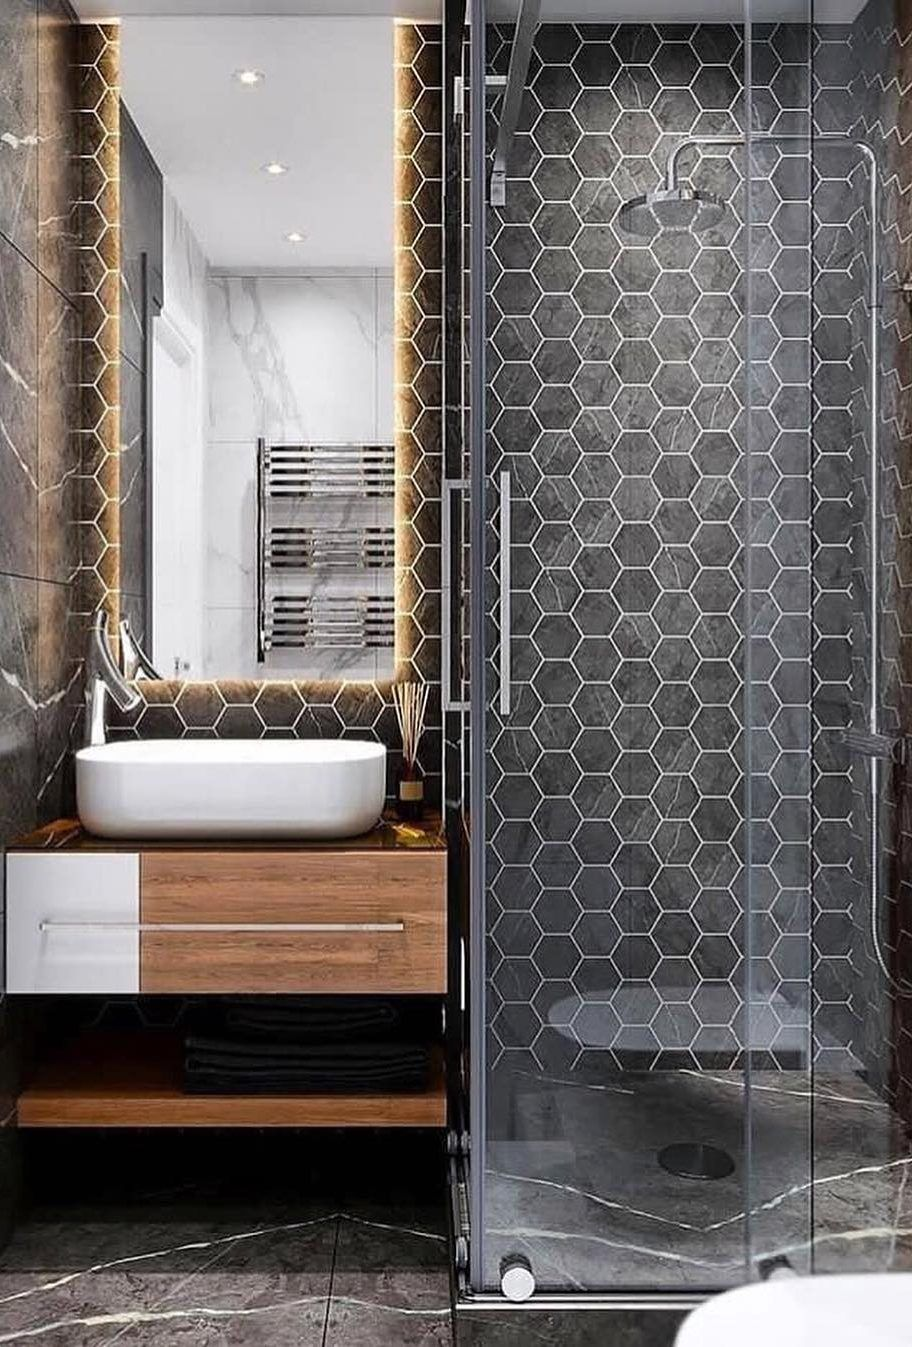 43 Amazing Most Popular Bathroom Design Ideas For This Year Page 29 Of 43 Womensays Com Women Blog Bathroom Design Bathroom Design Tool Popular Bathroom Designs Bathroom renovation design tool